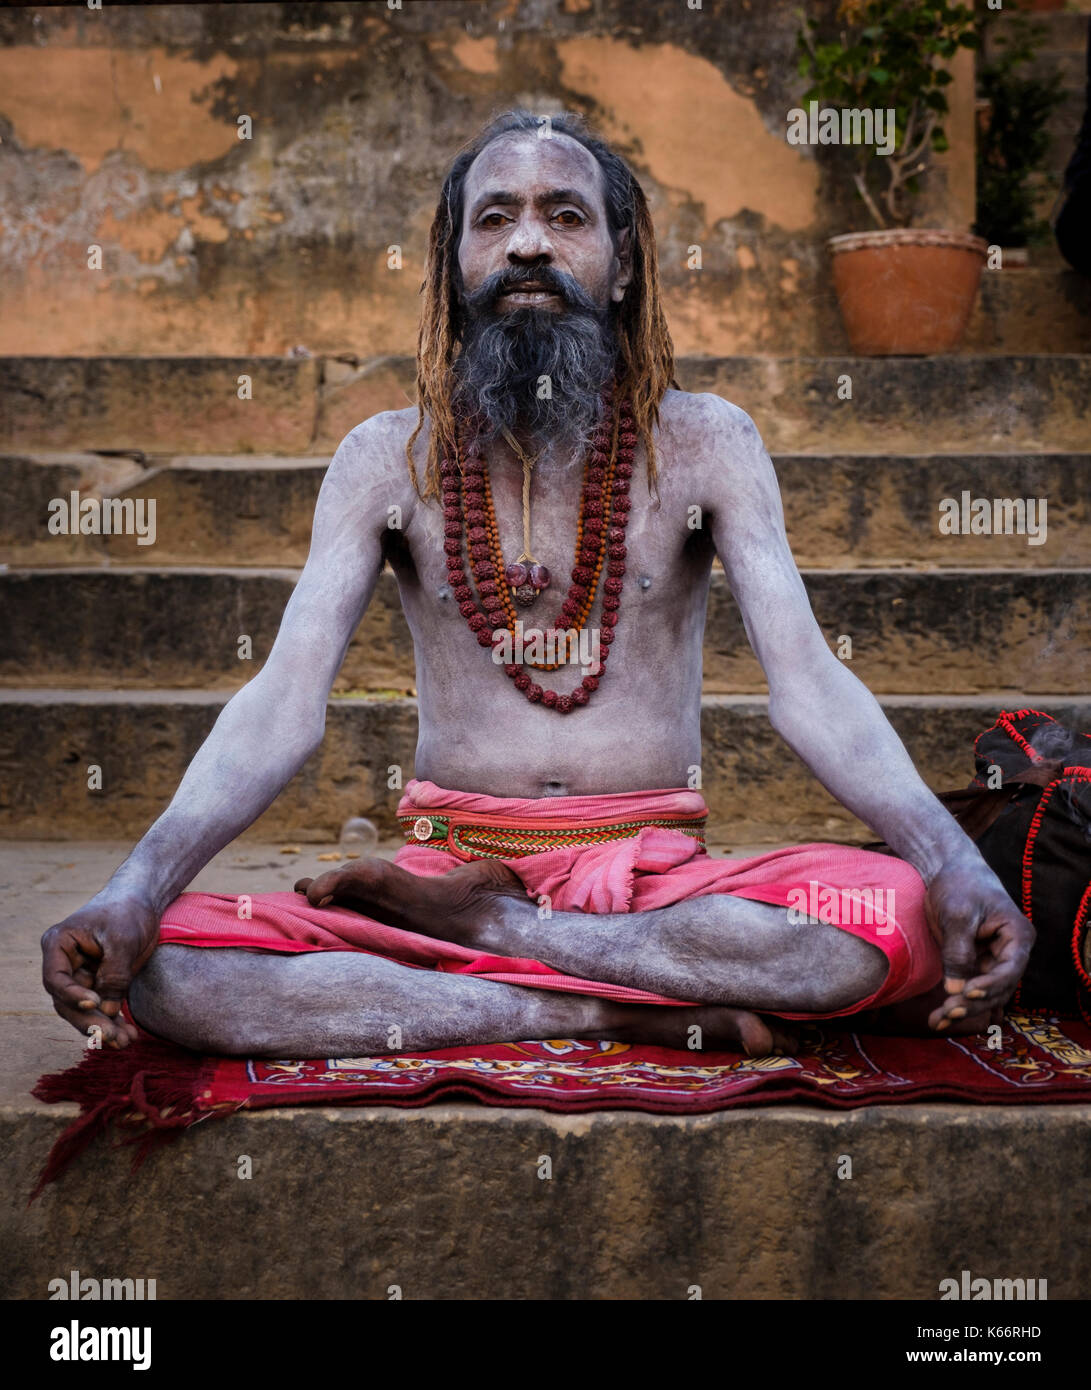 VARANASI, INDIA - CIRCA NOVEMBER 2016: Portrait of a Sadhu in Varanasi. The Sadhus or Holy Man are widely respected in India. Varanasi is the spiritua - Stock Image